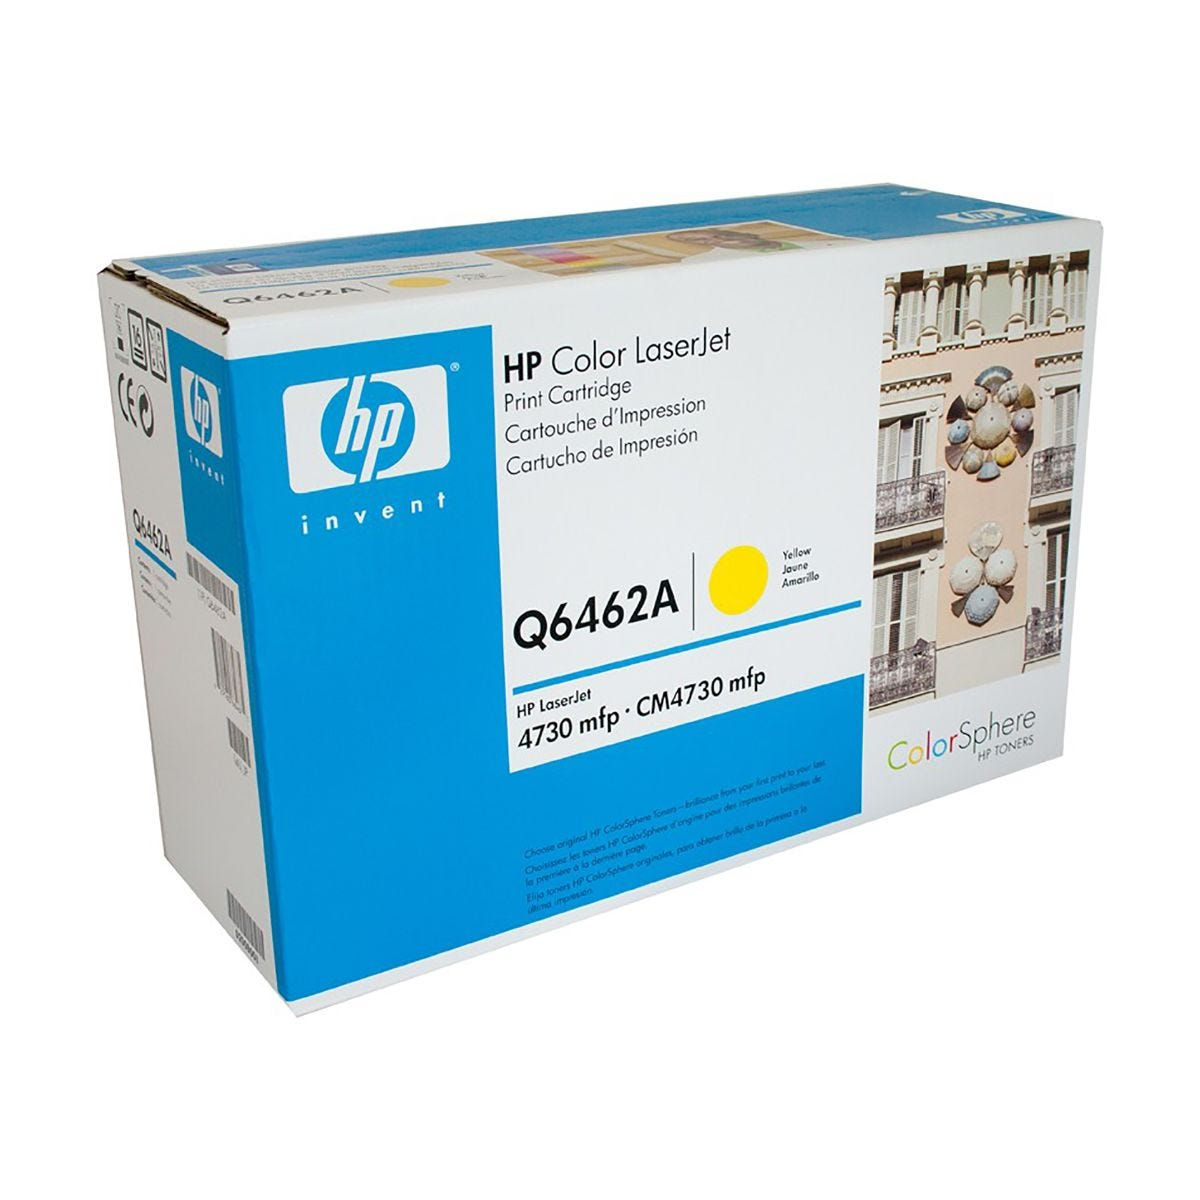 Image of HP 644A Laser Toner, Yellow